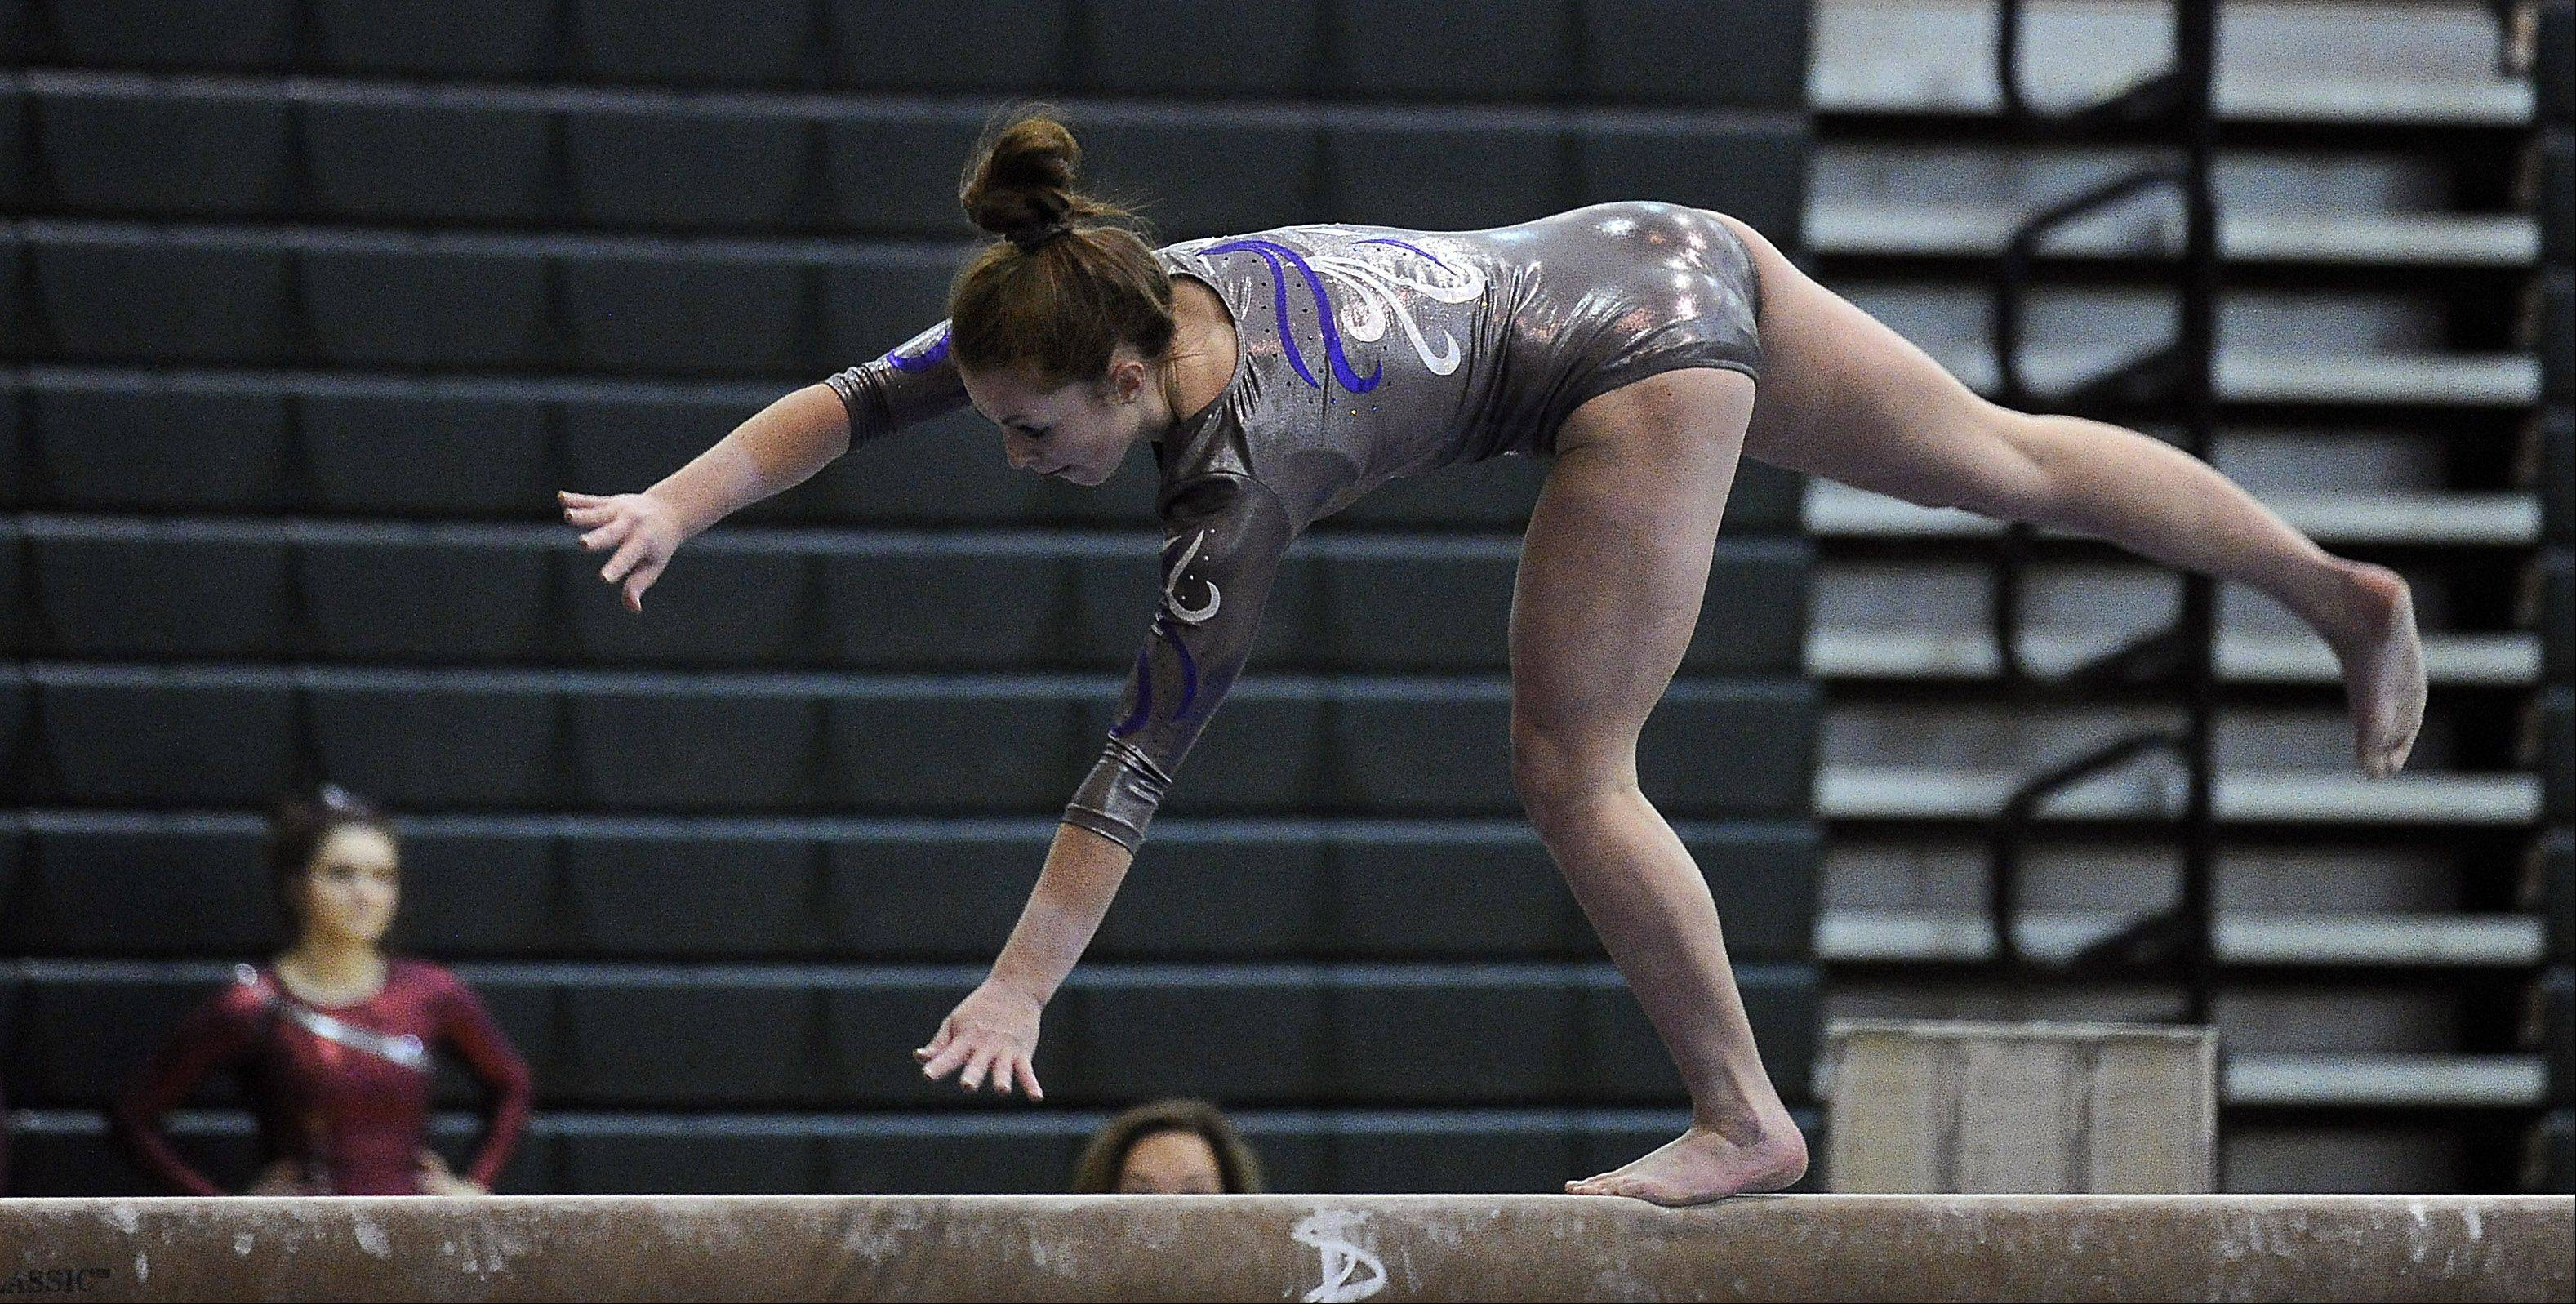 St. Edward senior Abby Madden will compete in all the individual events and the all-around competition this weekend at the state girls gymnastics meet.